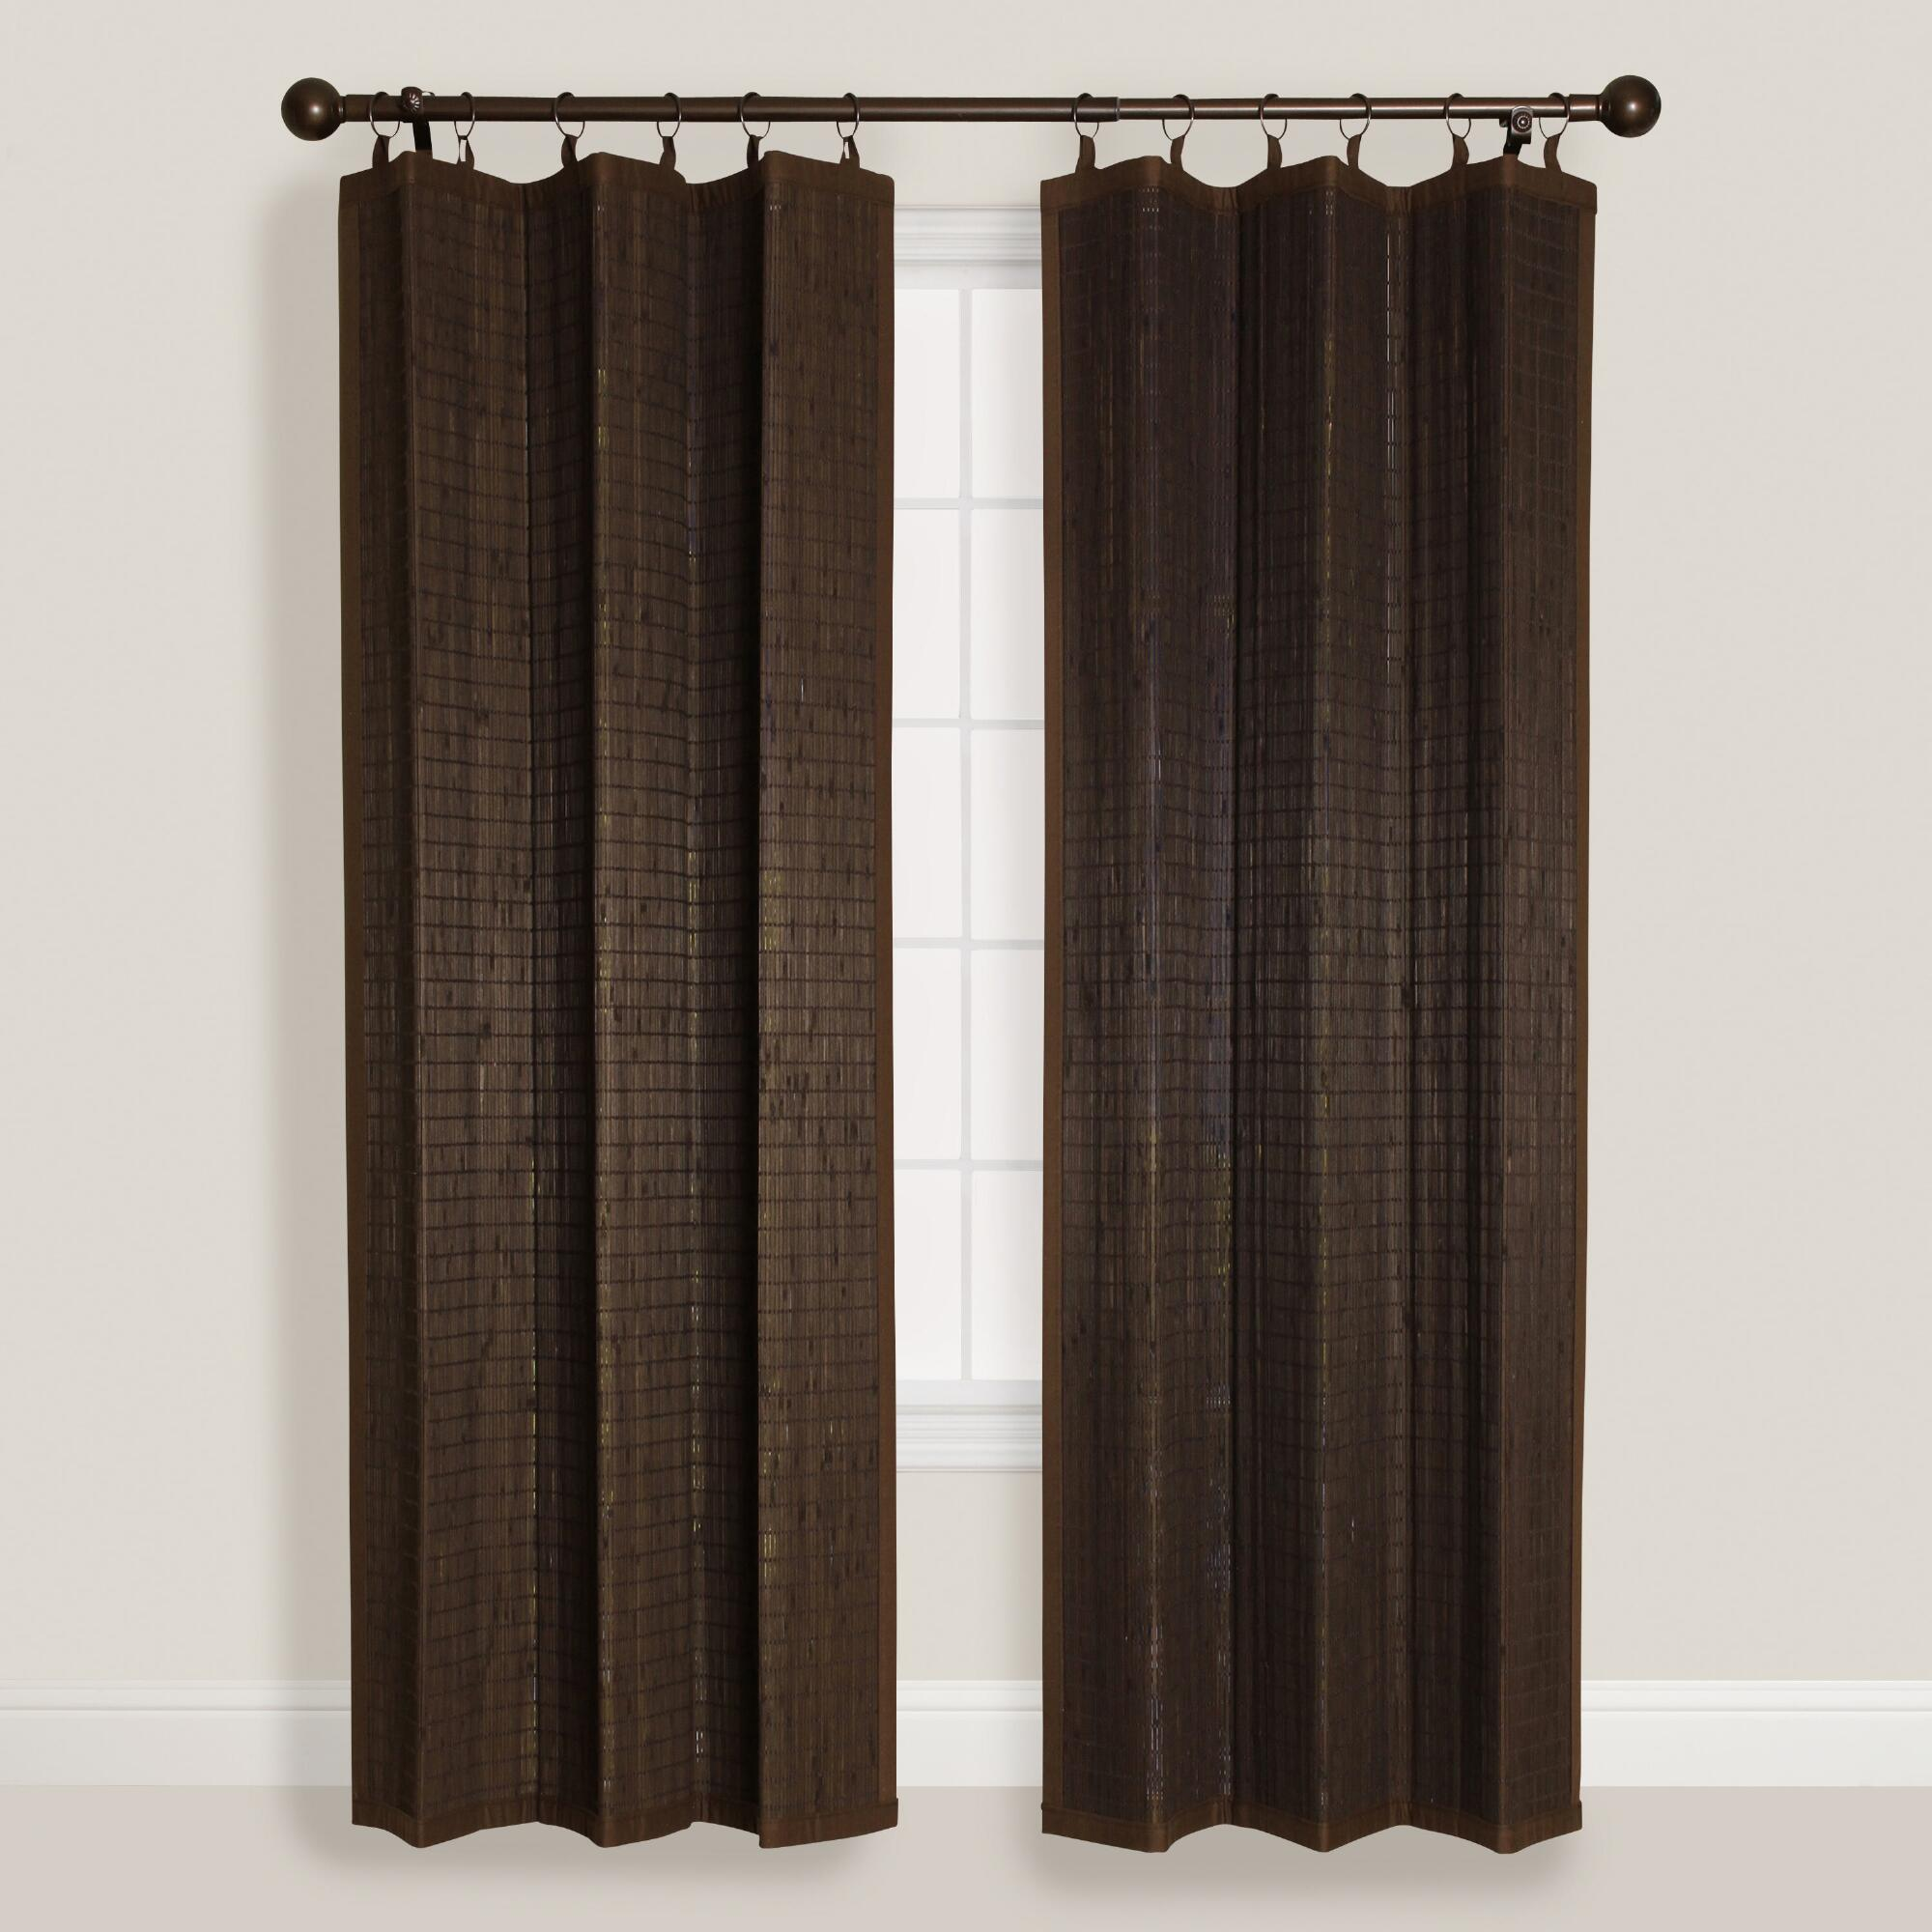 espresso bamboo ring top curtain world market. Black Bedroom Furniture Sets. Home Design Ideas